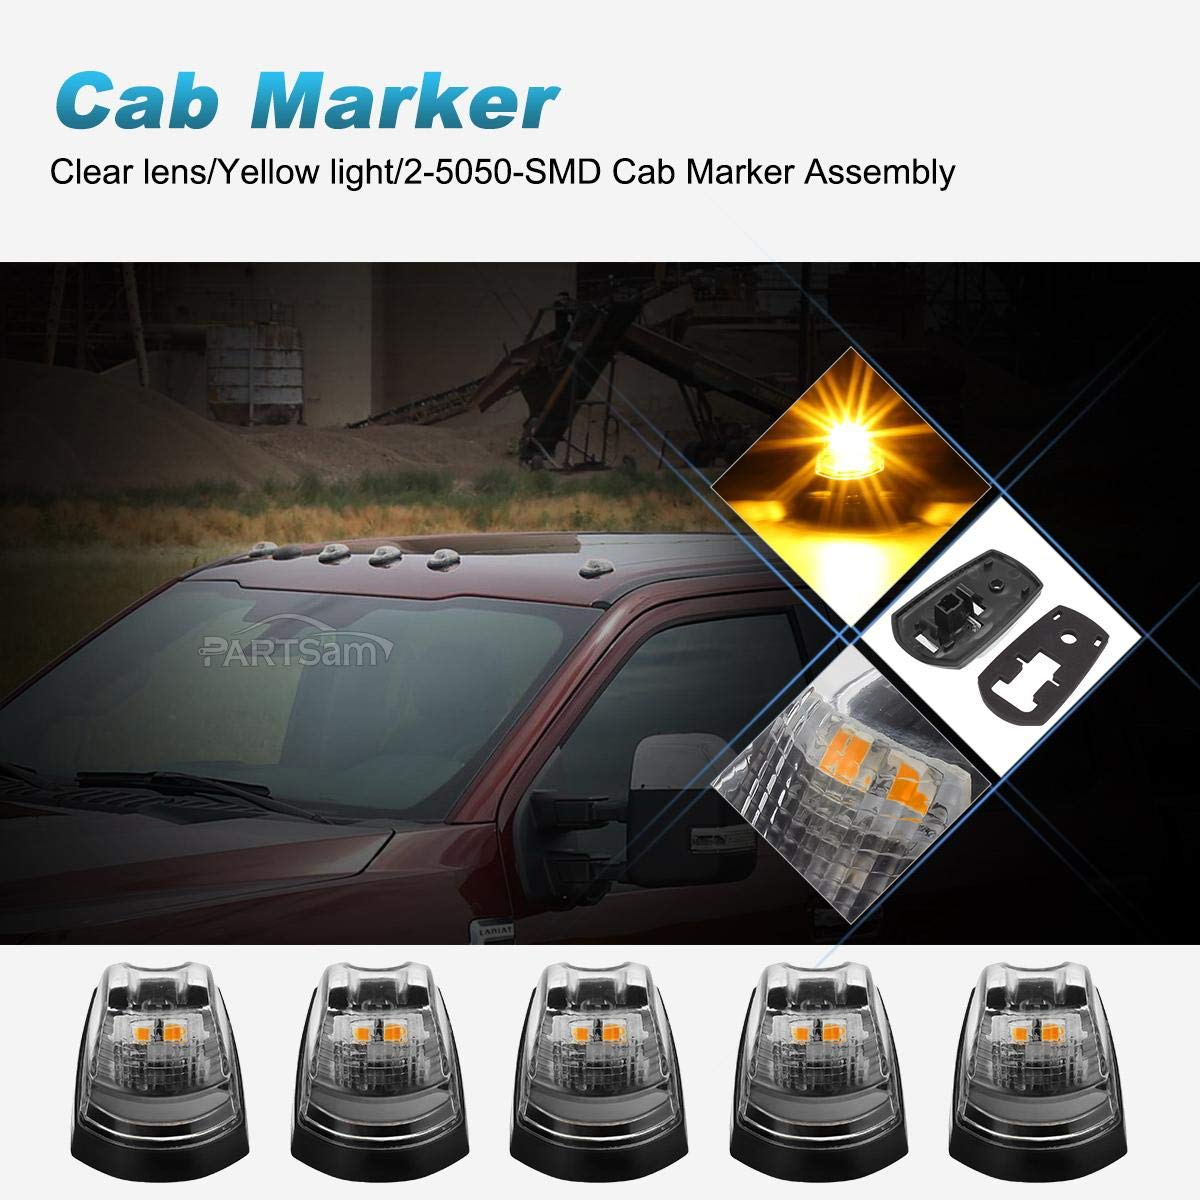 Partsam Clear Lens Cab Marker Top Roof Running Lights Amber Lamps LED Light Assembly Compatible with Ford F-250 F-350 F-450 F-550 2017 2018 Super Duty 264343CL Cab Light